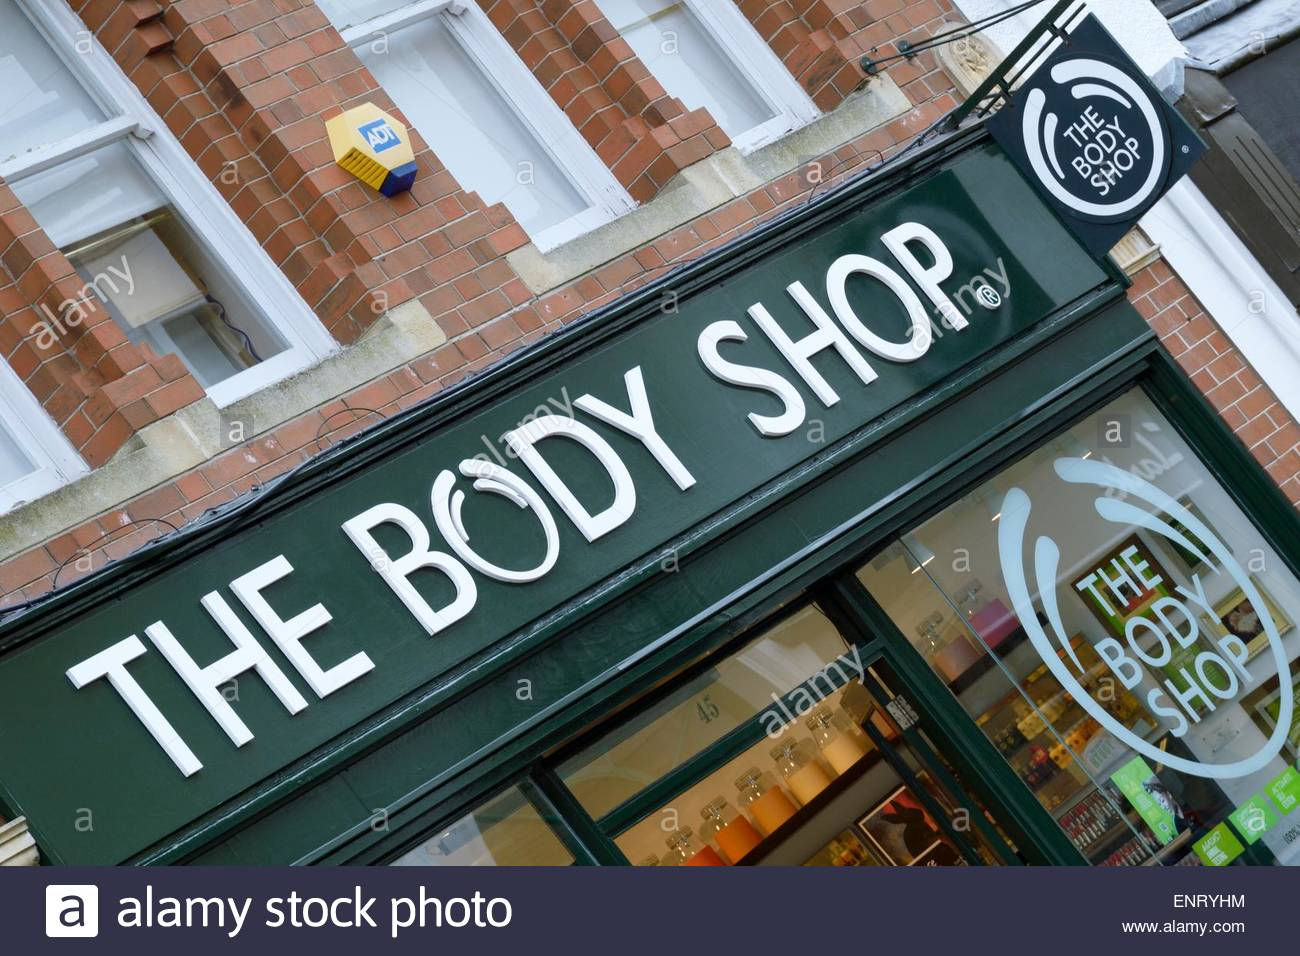 the body shop store stock photos the body shop store stock images alamy. Black Bedroom Furniture Sets. Home Design Ideas